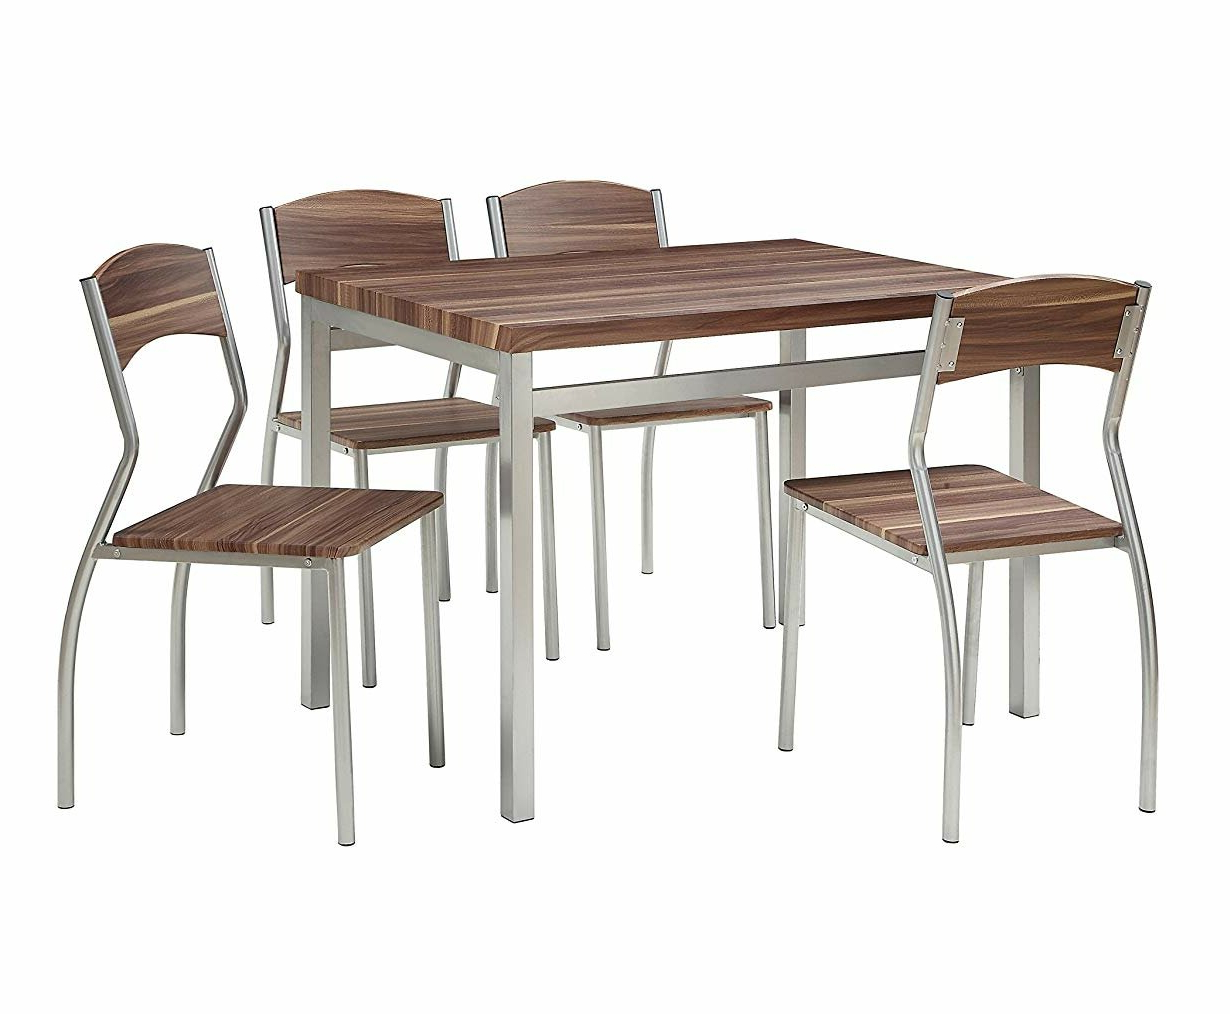 Kaelin 5 Piece Dining Set With Regard To Most Current Rarick 5 Piece Solid Wood Dining Sets (set Of 5) (Gallery 7 of 20)